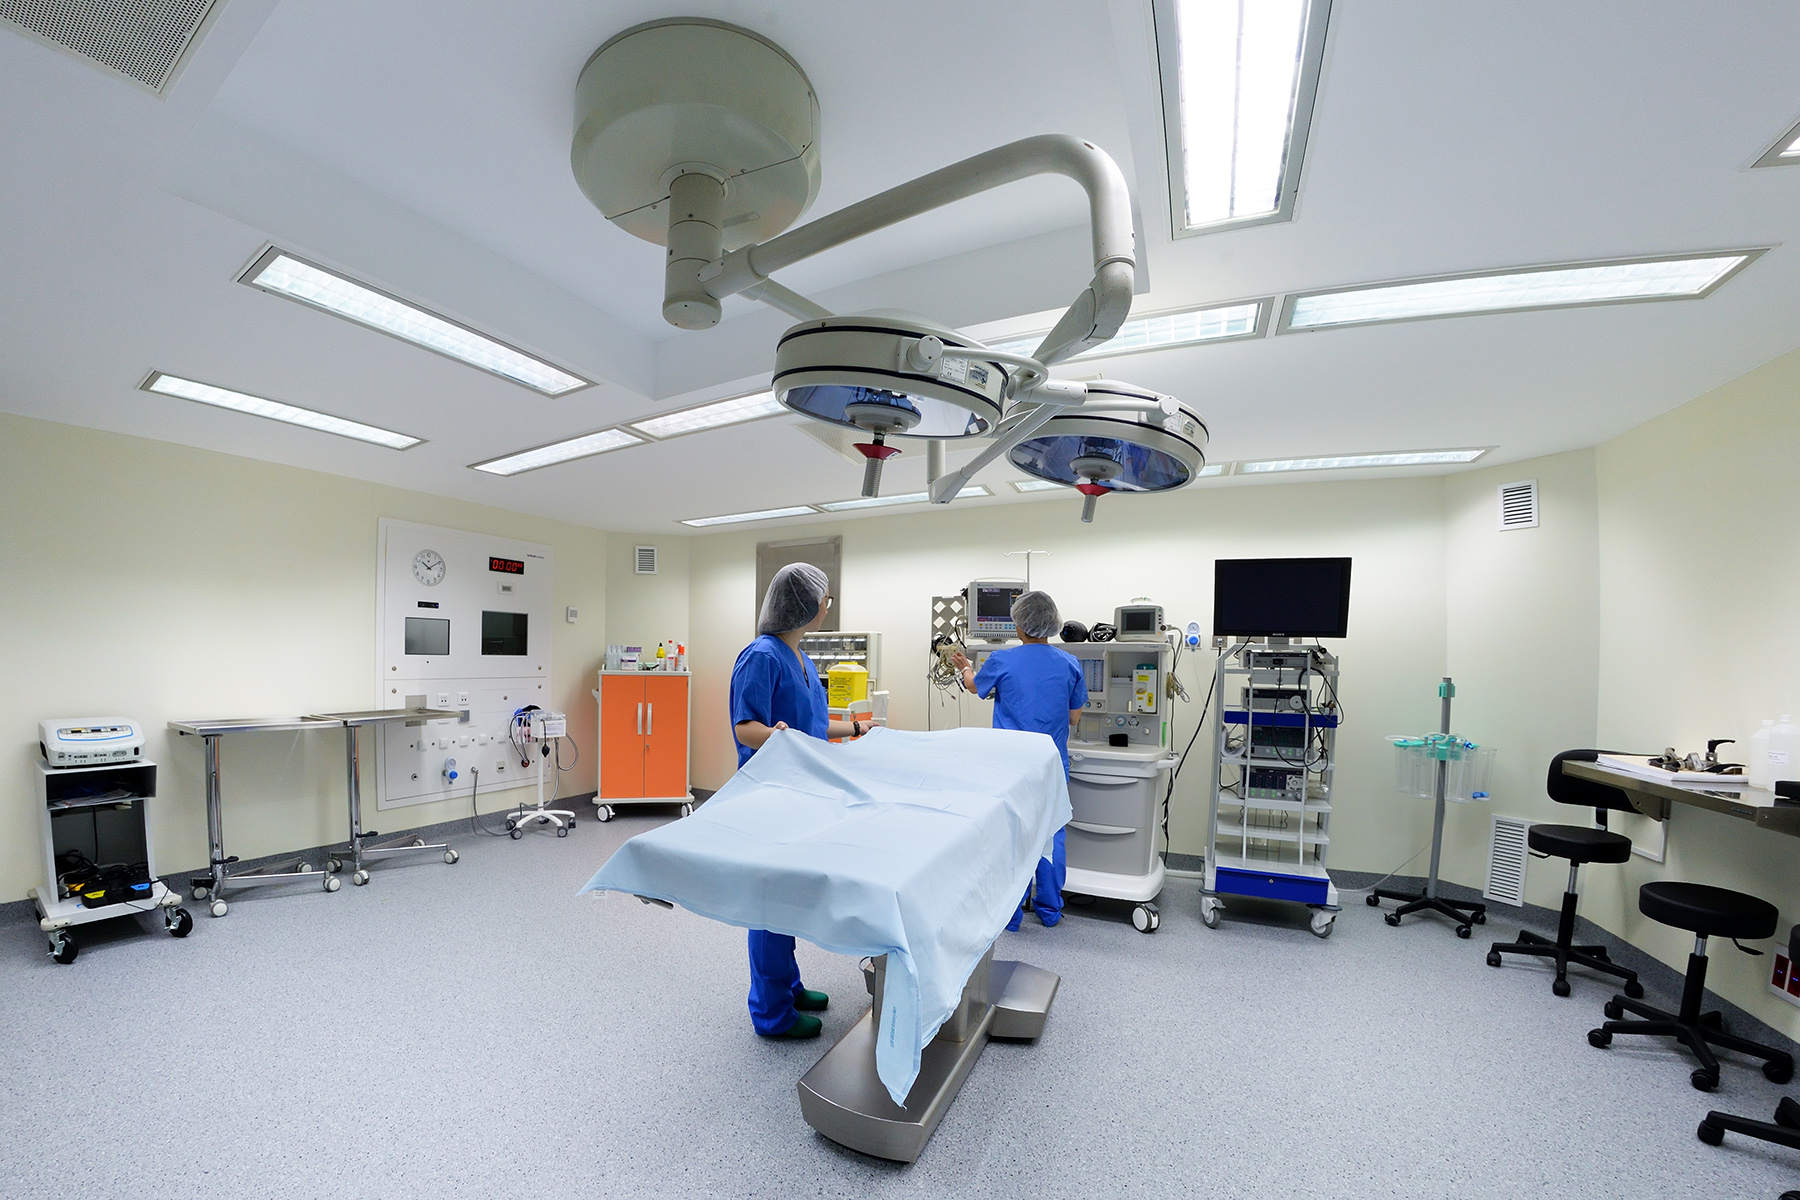 An operating room in a Barcelona hospital